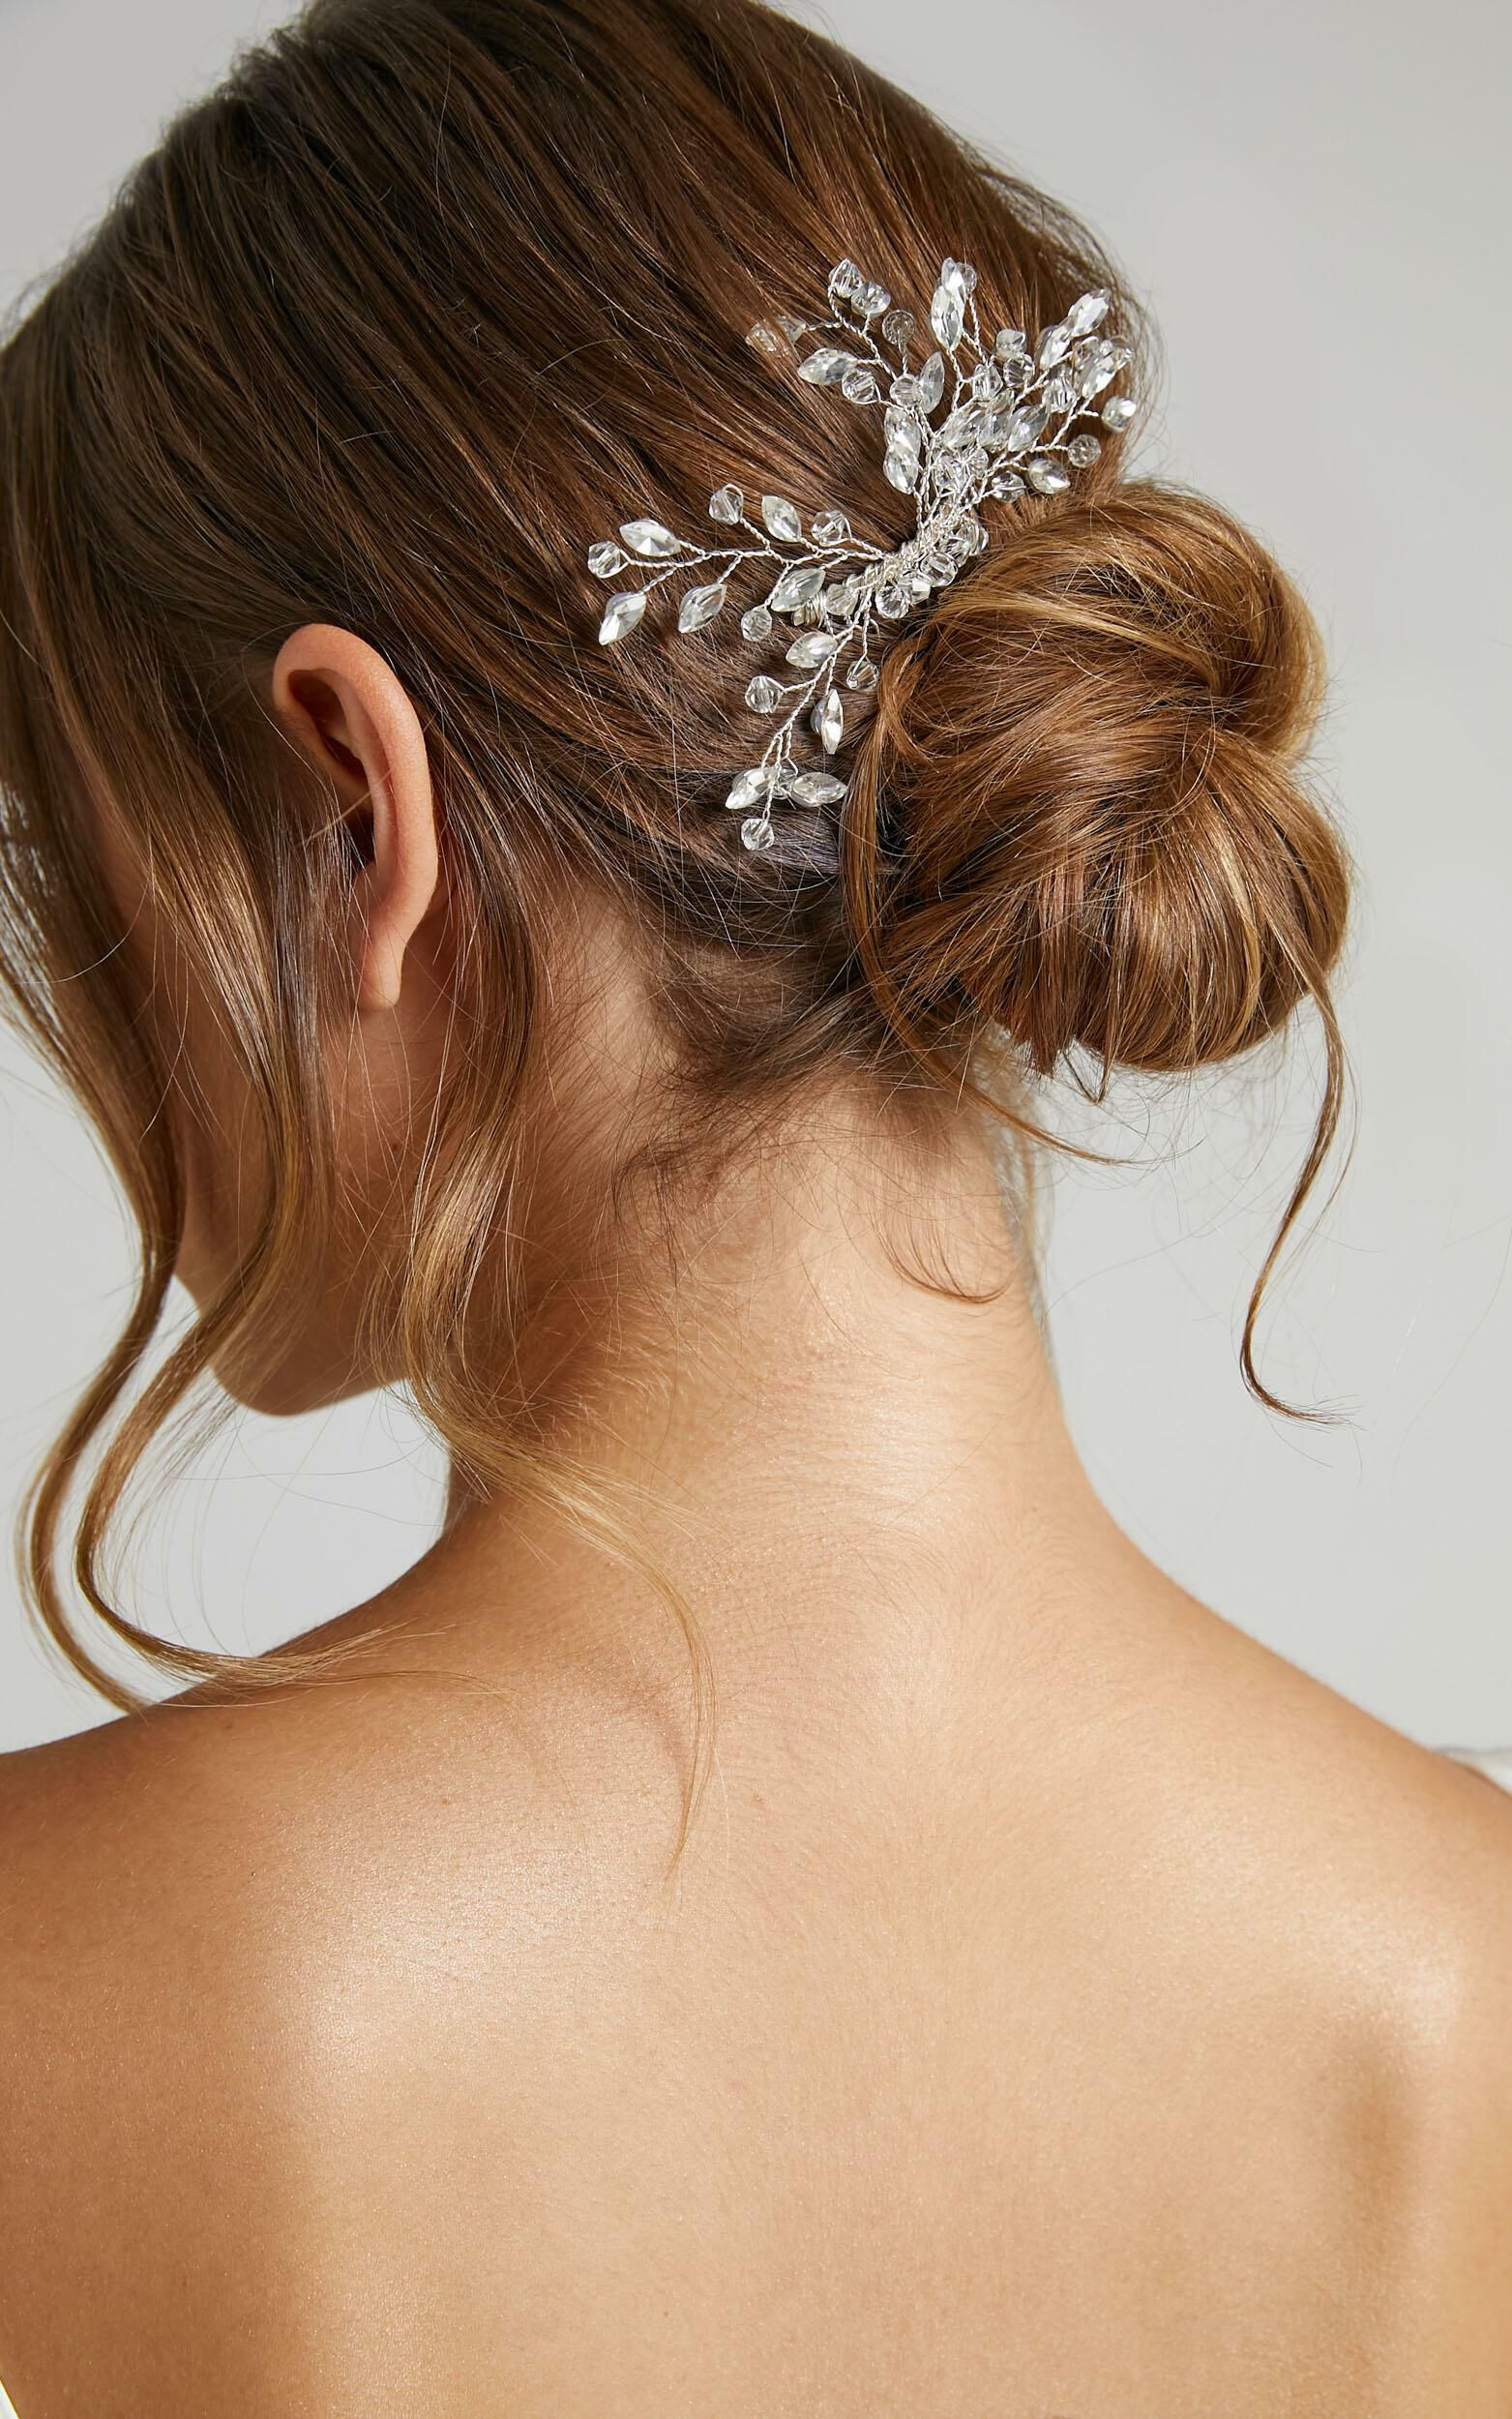 Stand By You Hair Piece in Silver, SLV1, super-hi-res image number null